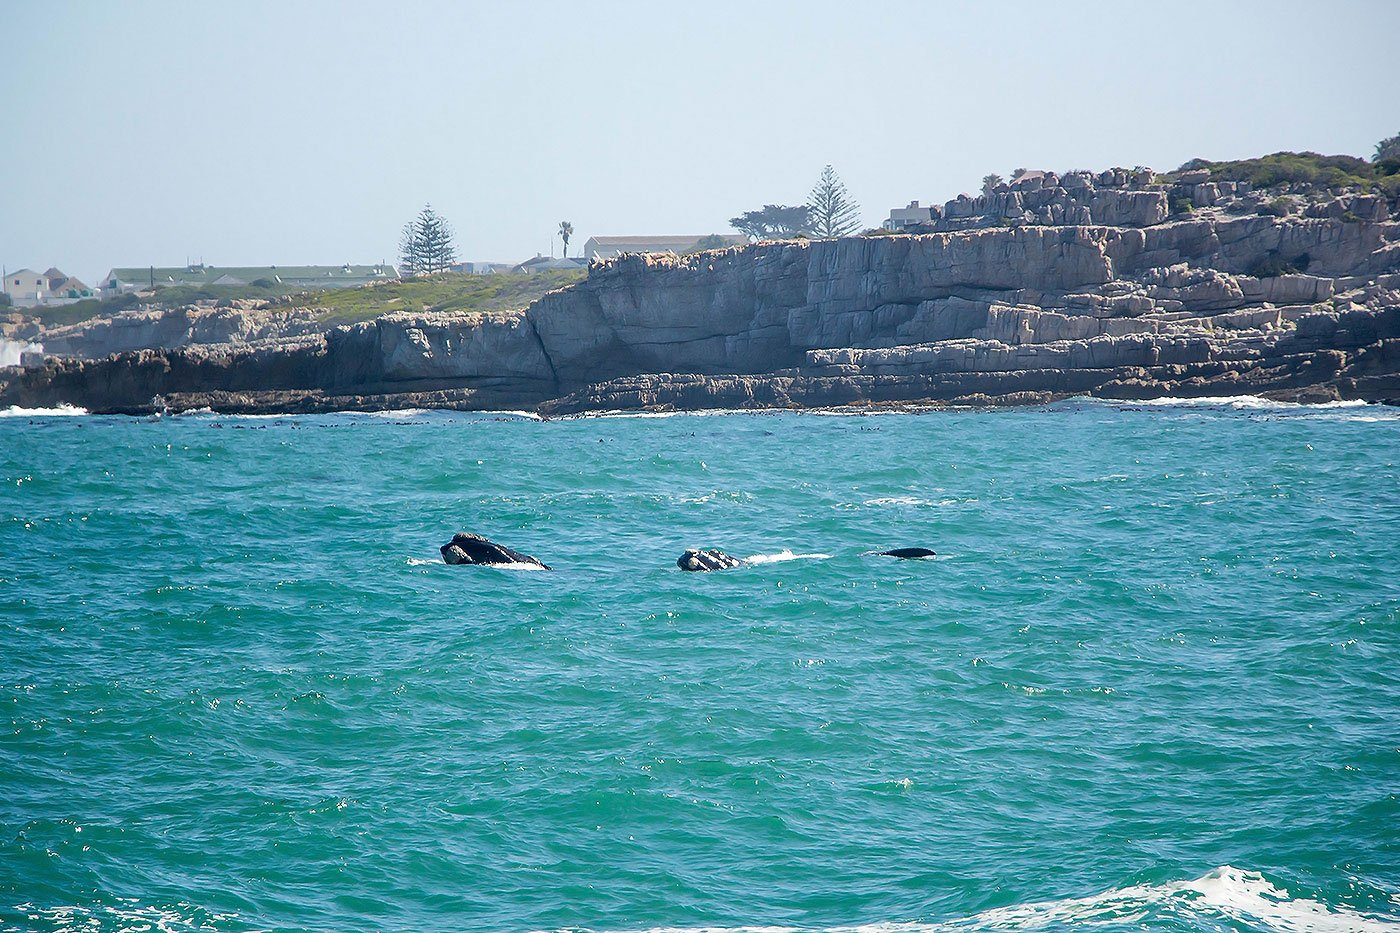 Wine and Wildlife: 3 Day Trips From Cape Town - Wale Watching in Hermanus